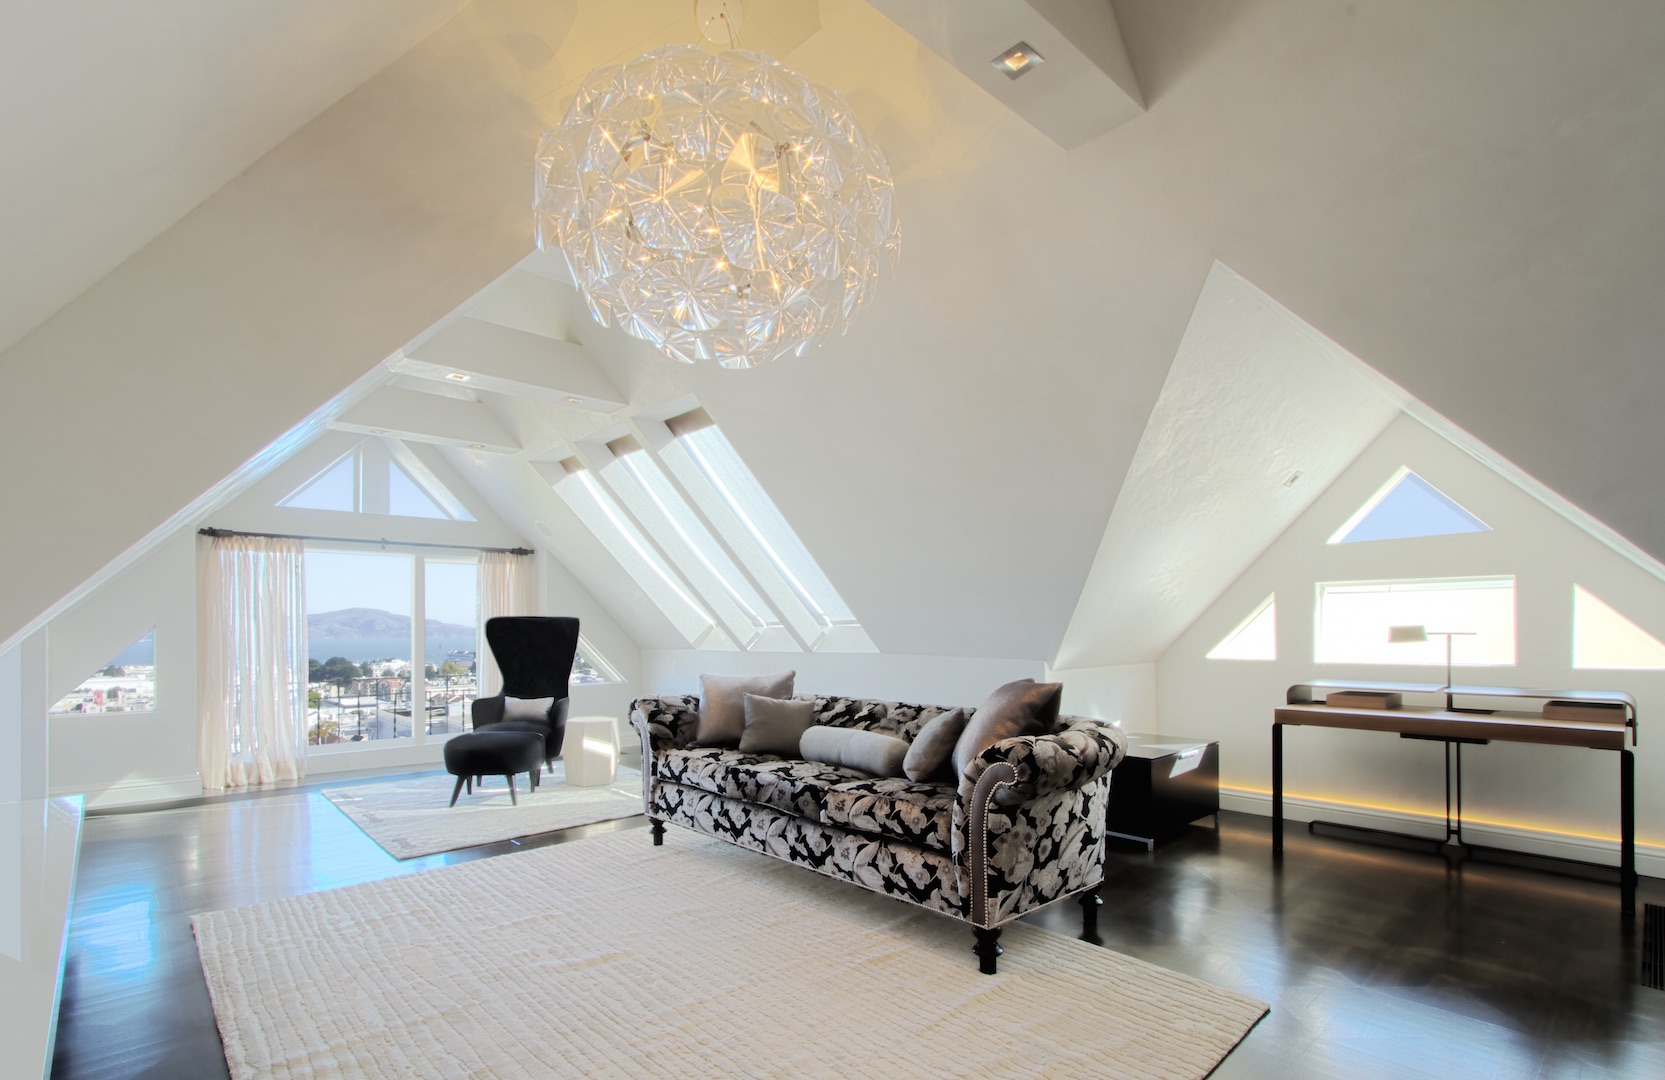 Skylight and window replacements in Pacific Heights attic penthouse